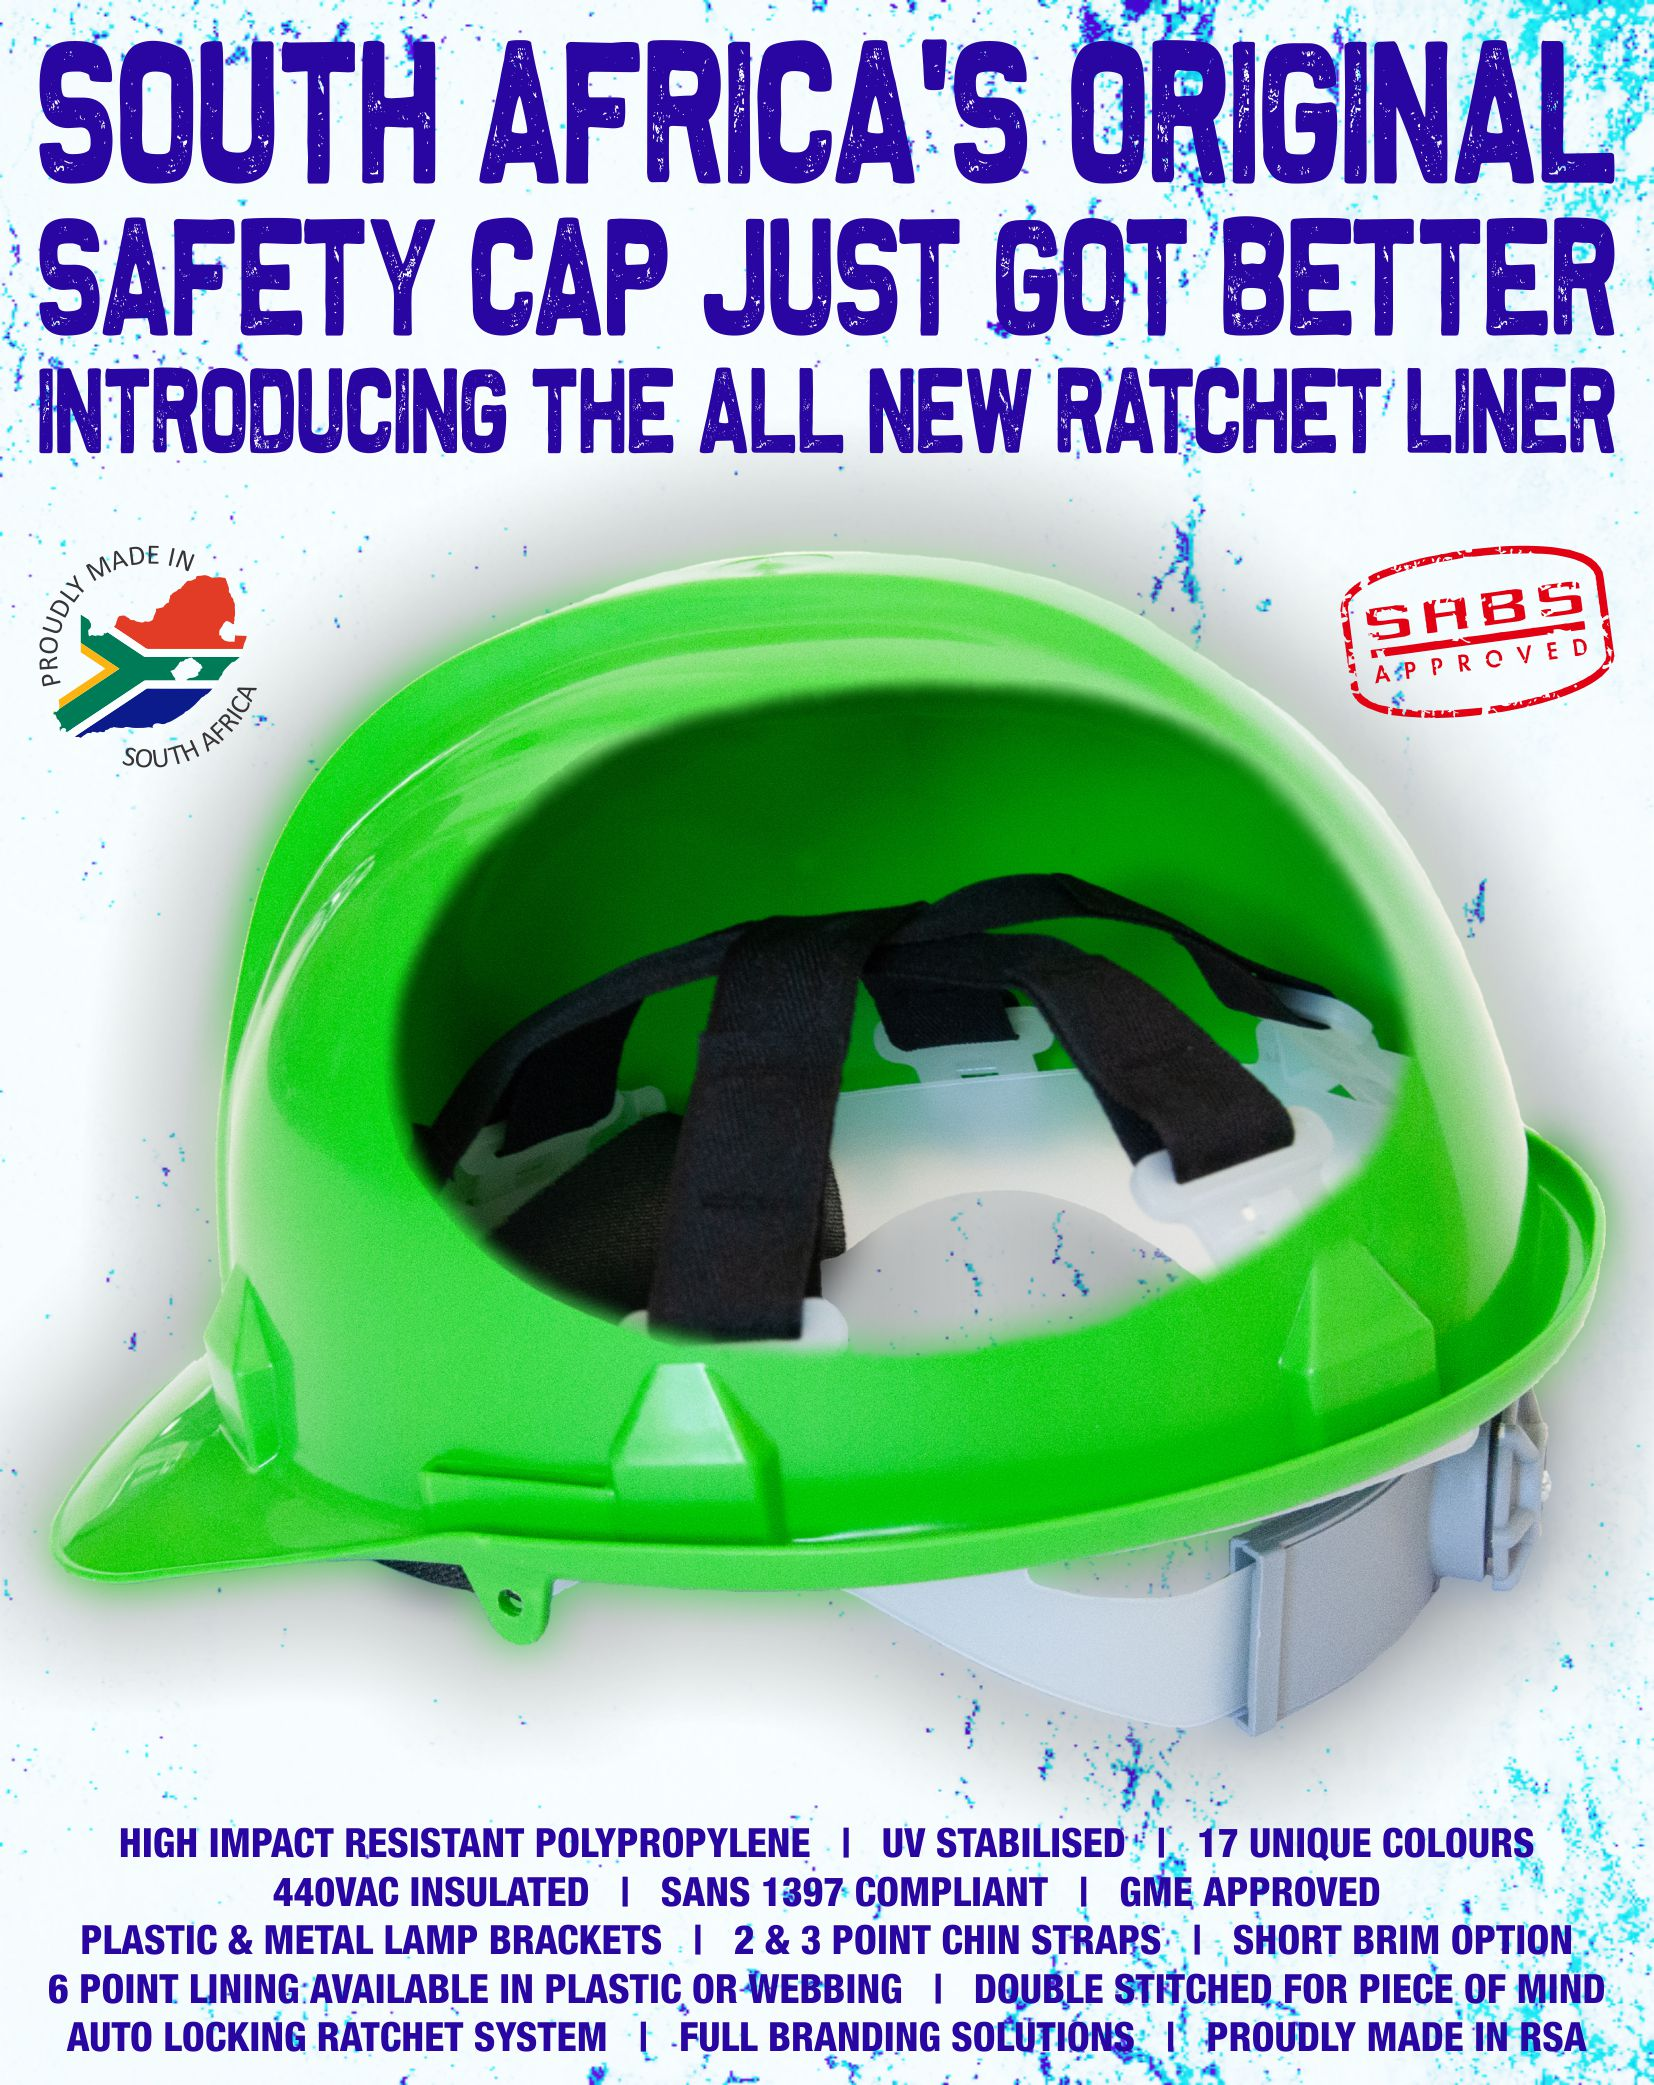 Safeco - Personal Protective Equipment & Safety Wear Safeco